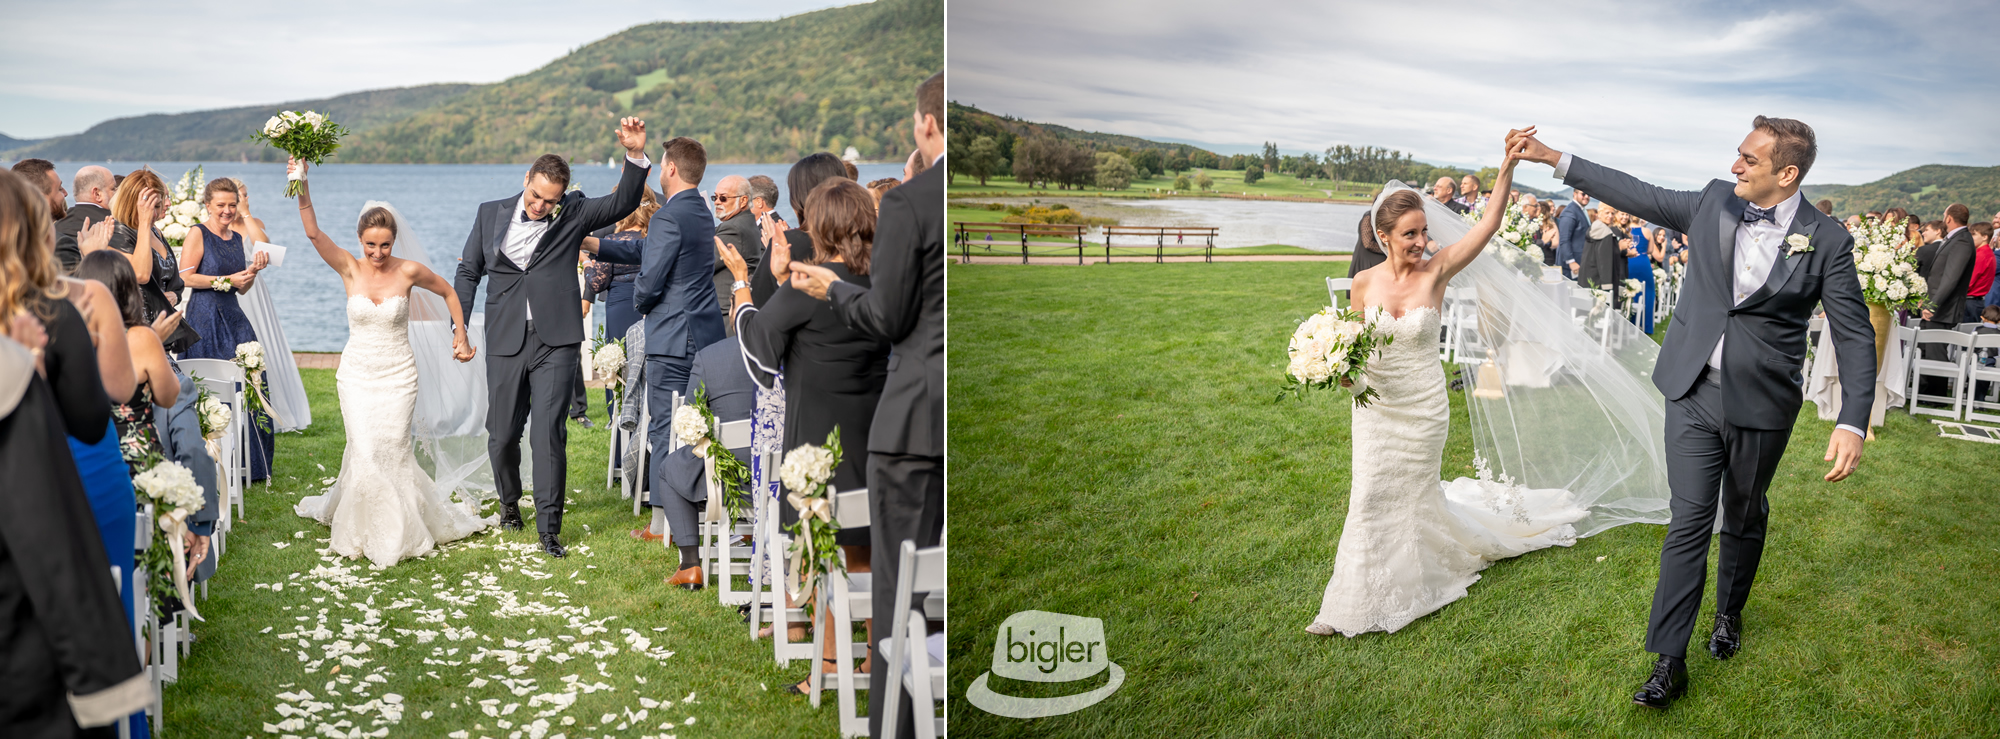 20180915_-_26_-_Ally_and_Andrew_Otesaga_Wedding